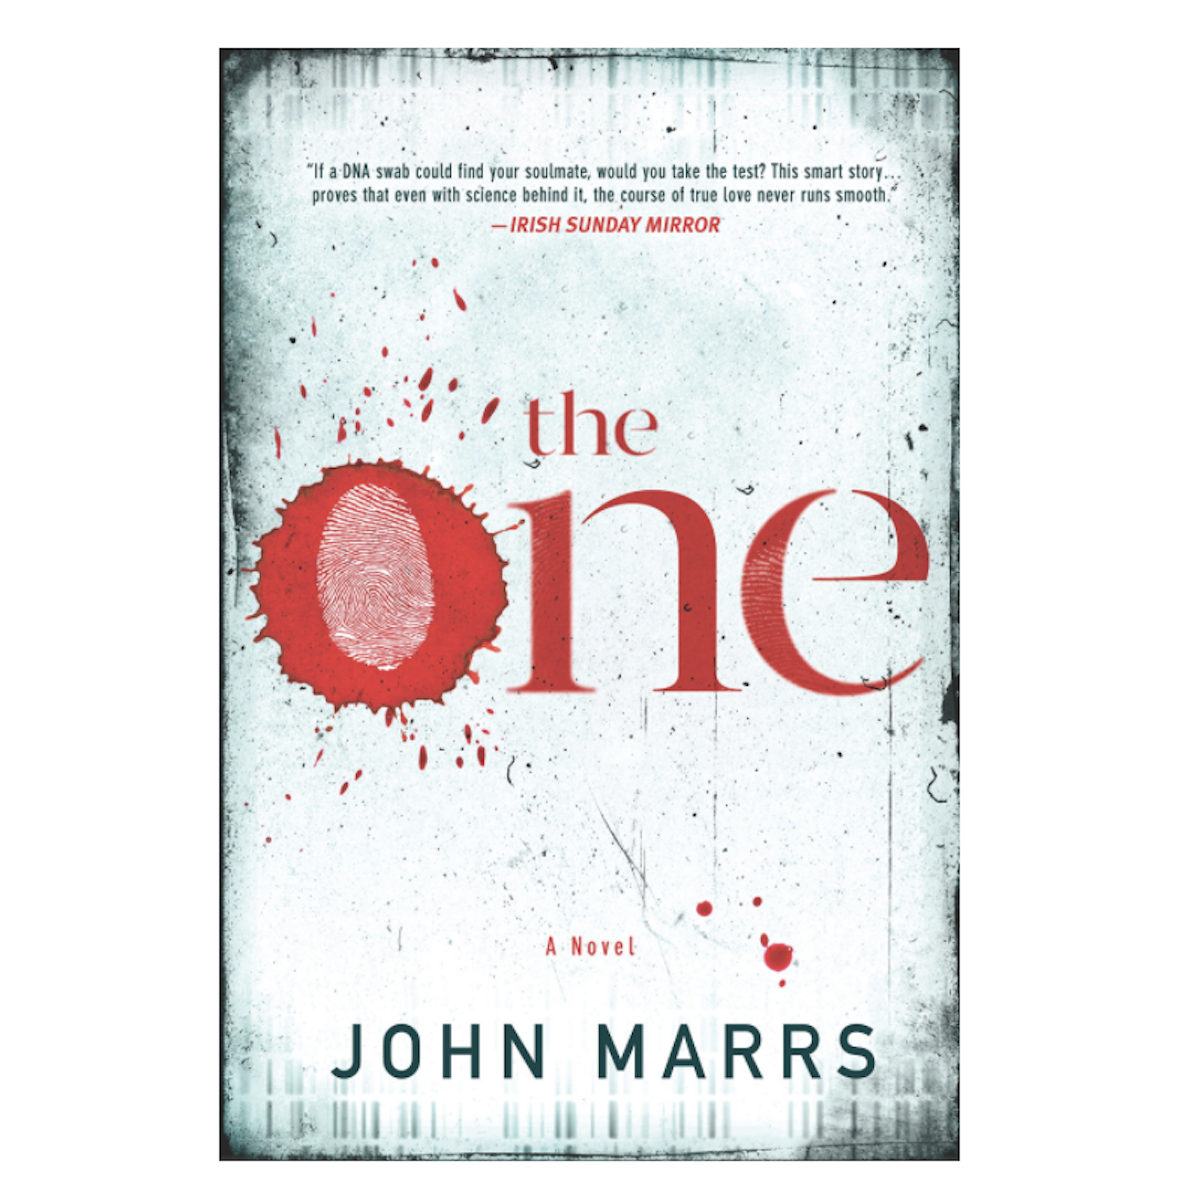 The One by John Marrs hardcover book